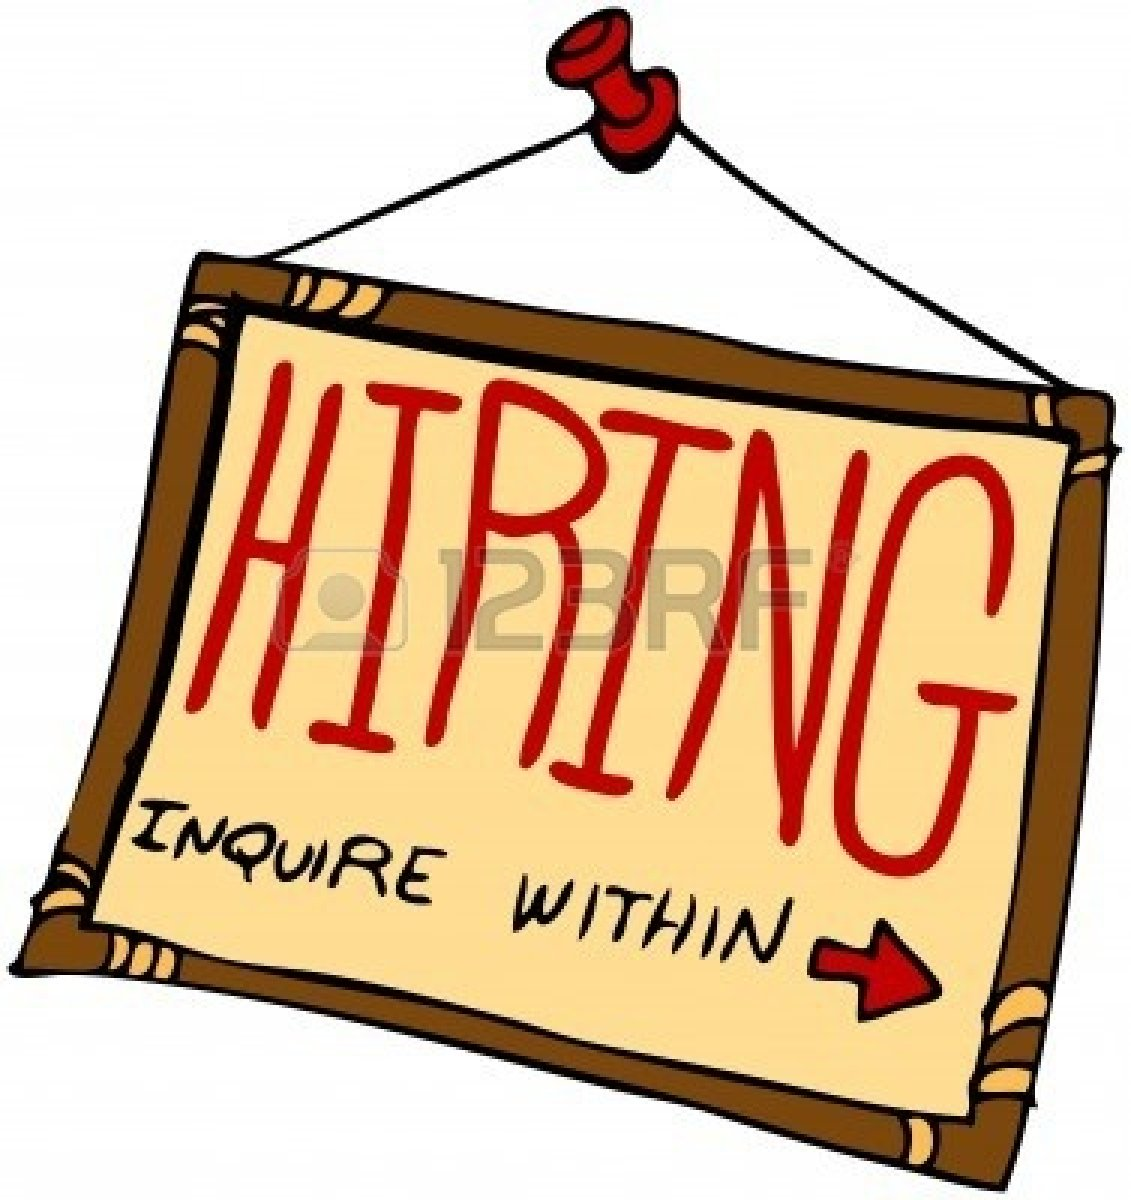 Looking for a Job Clip Art